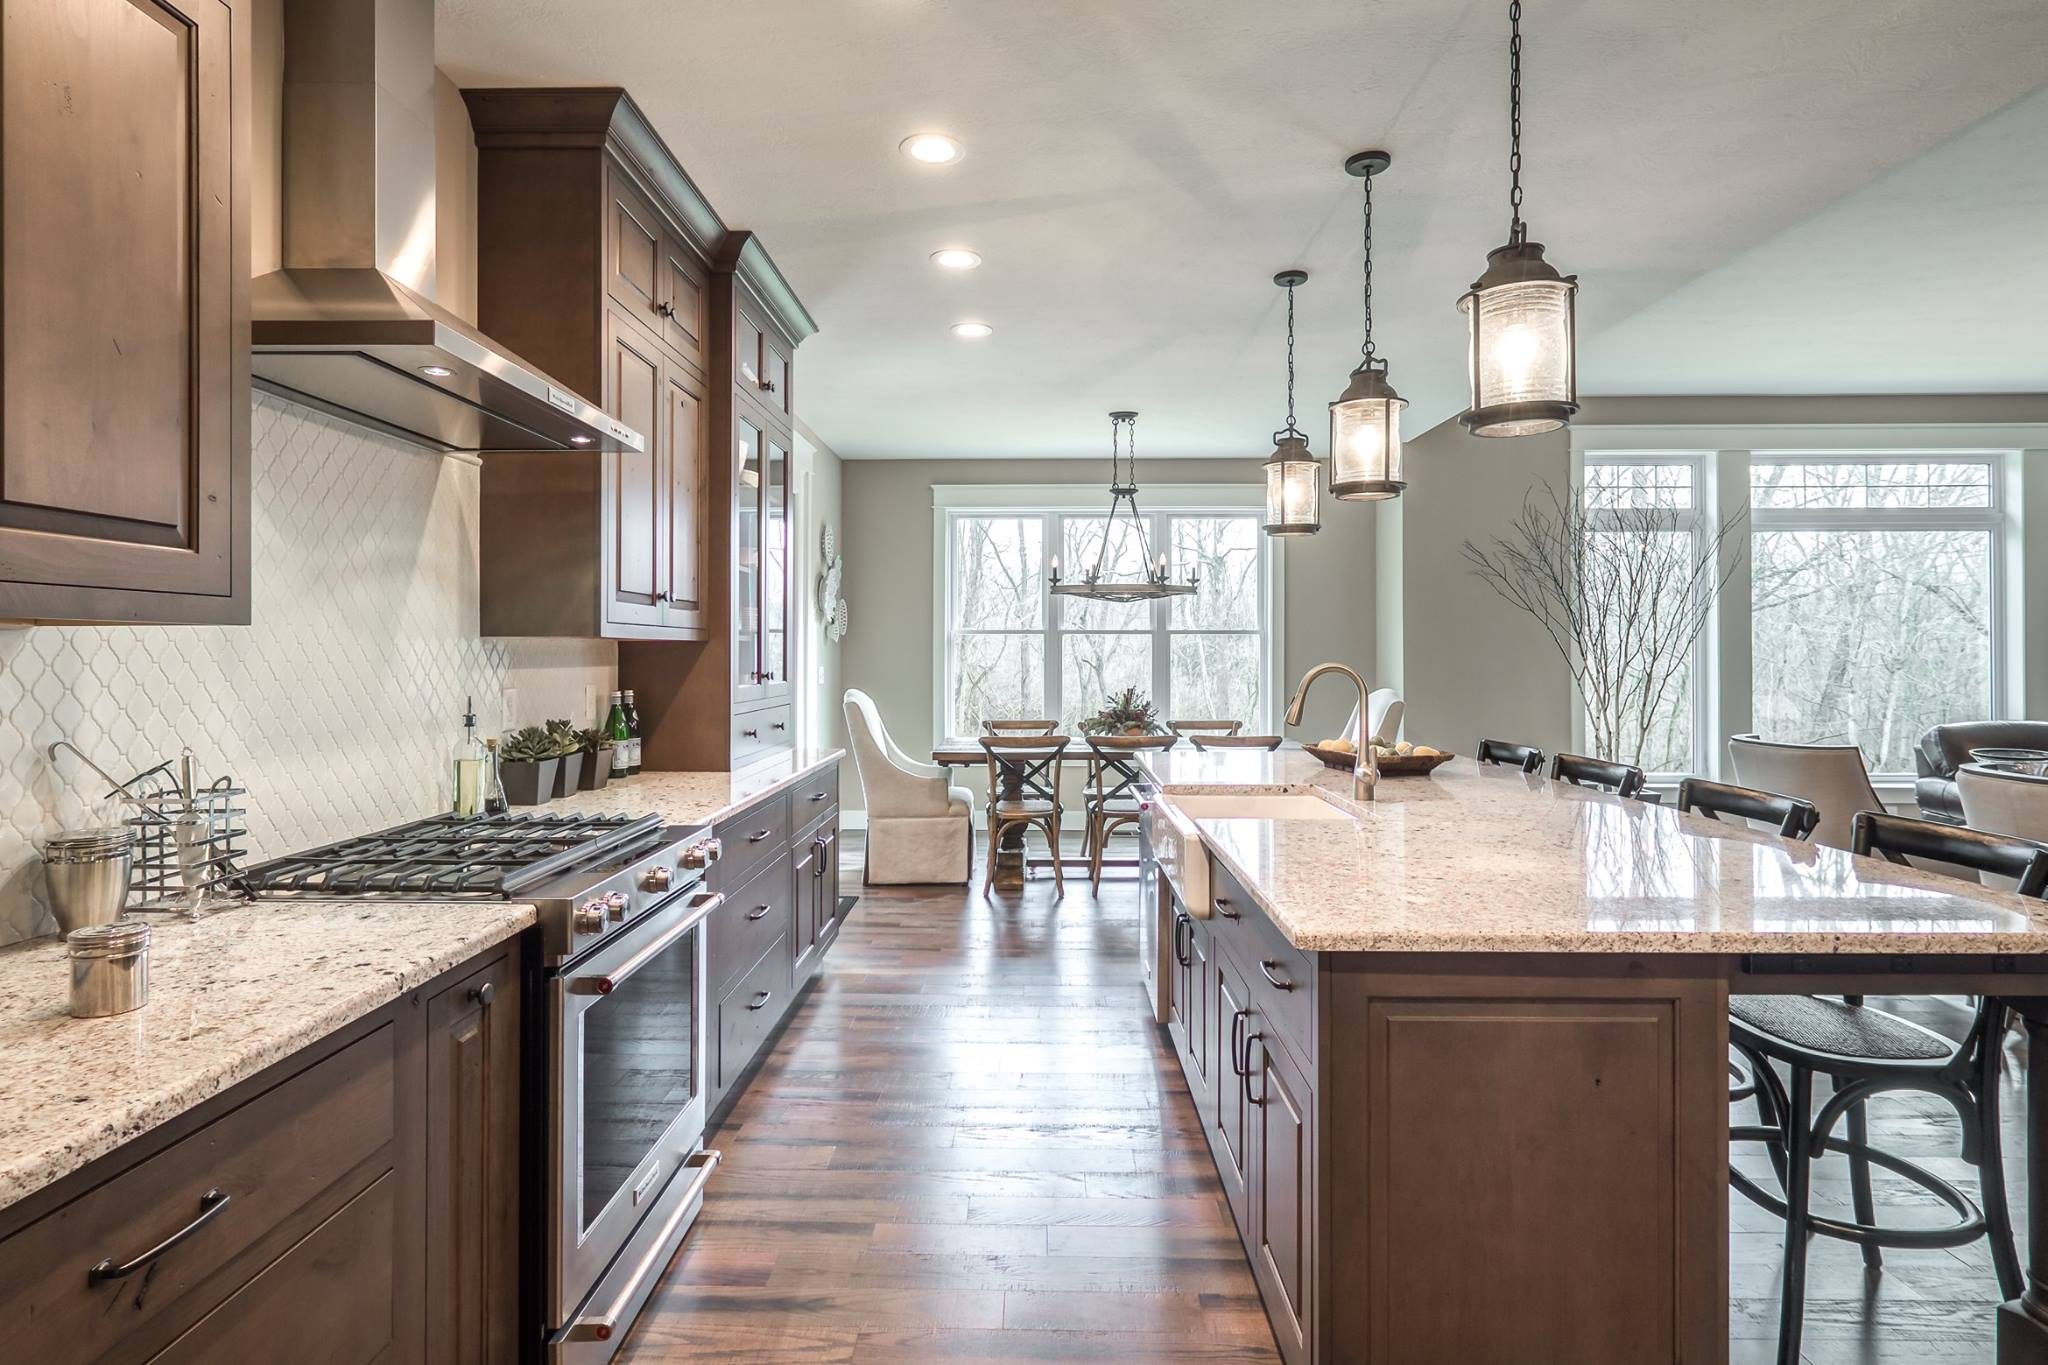 Kitchen And Bath Remodeling The Kitchen Place Xenia Ohio